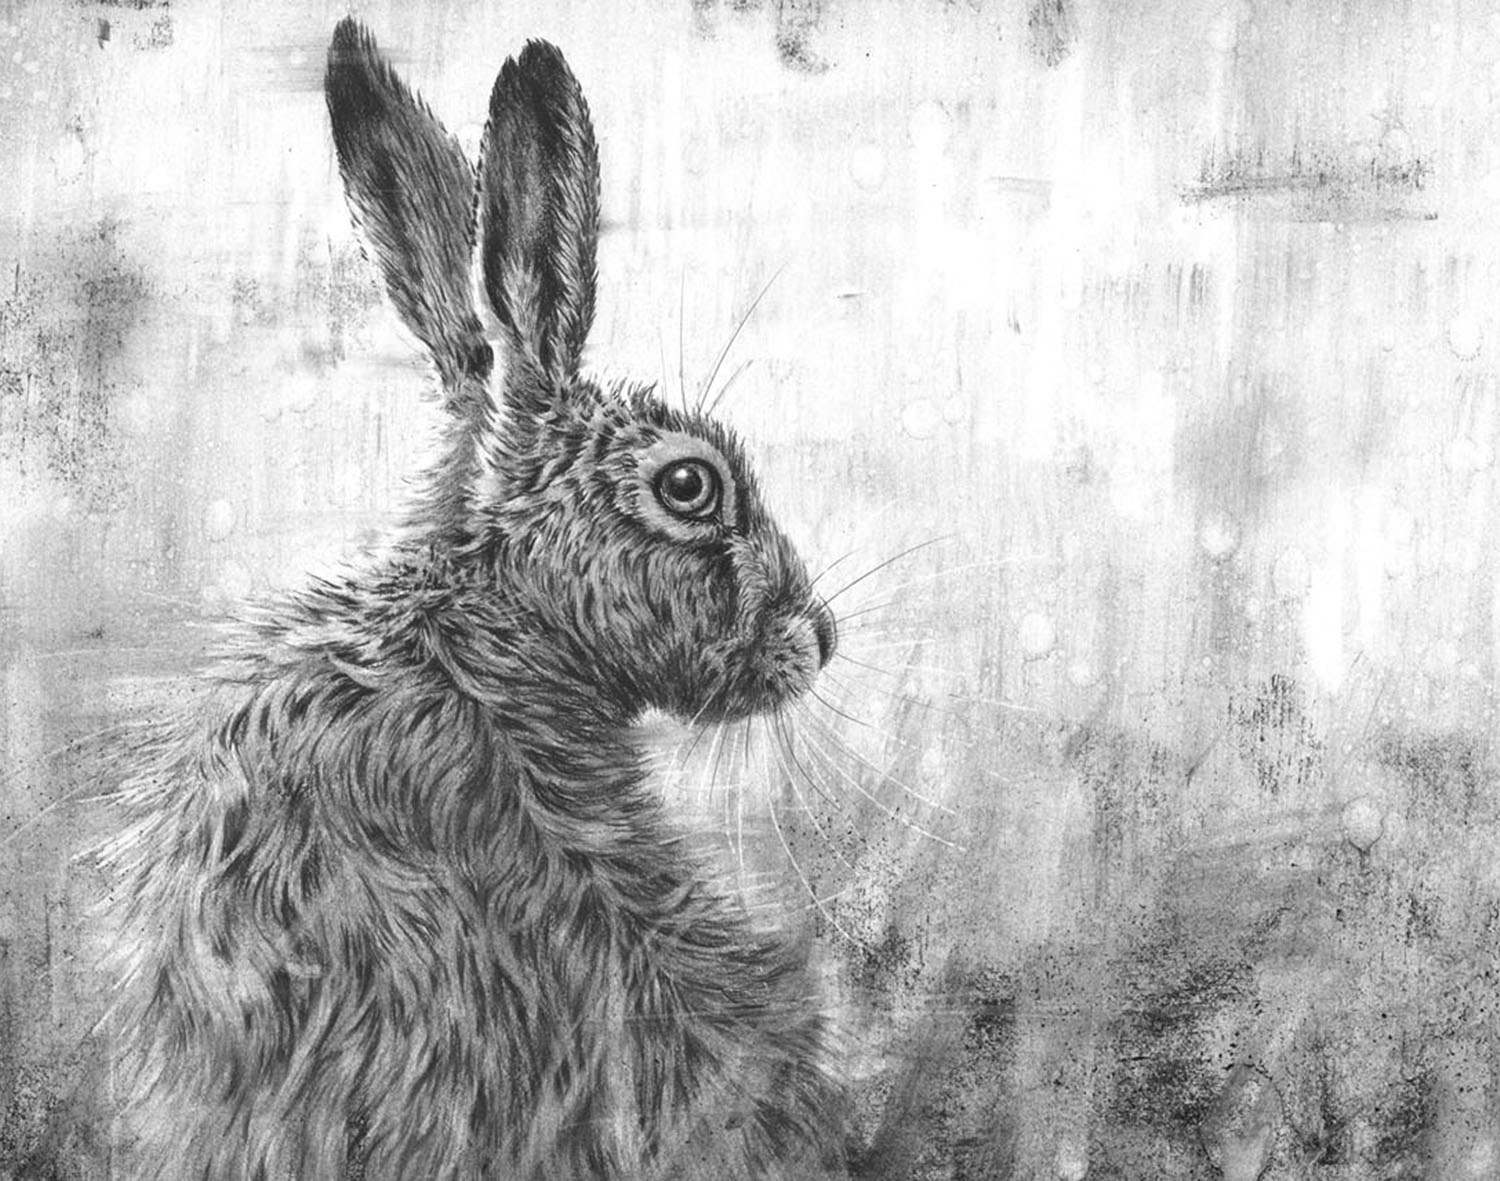 Limited Edition Prints - Browse the various collections of limited edition prints, including hares, owls, British wildlife, farm animals and more